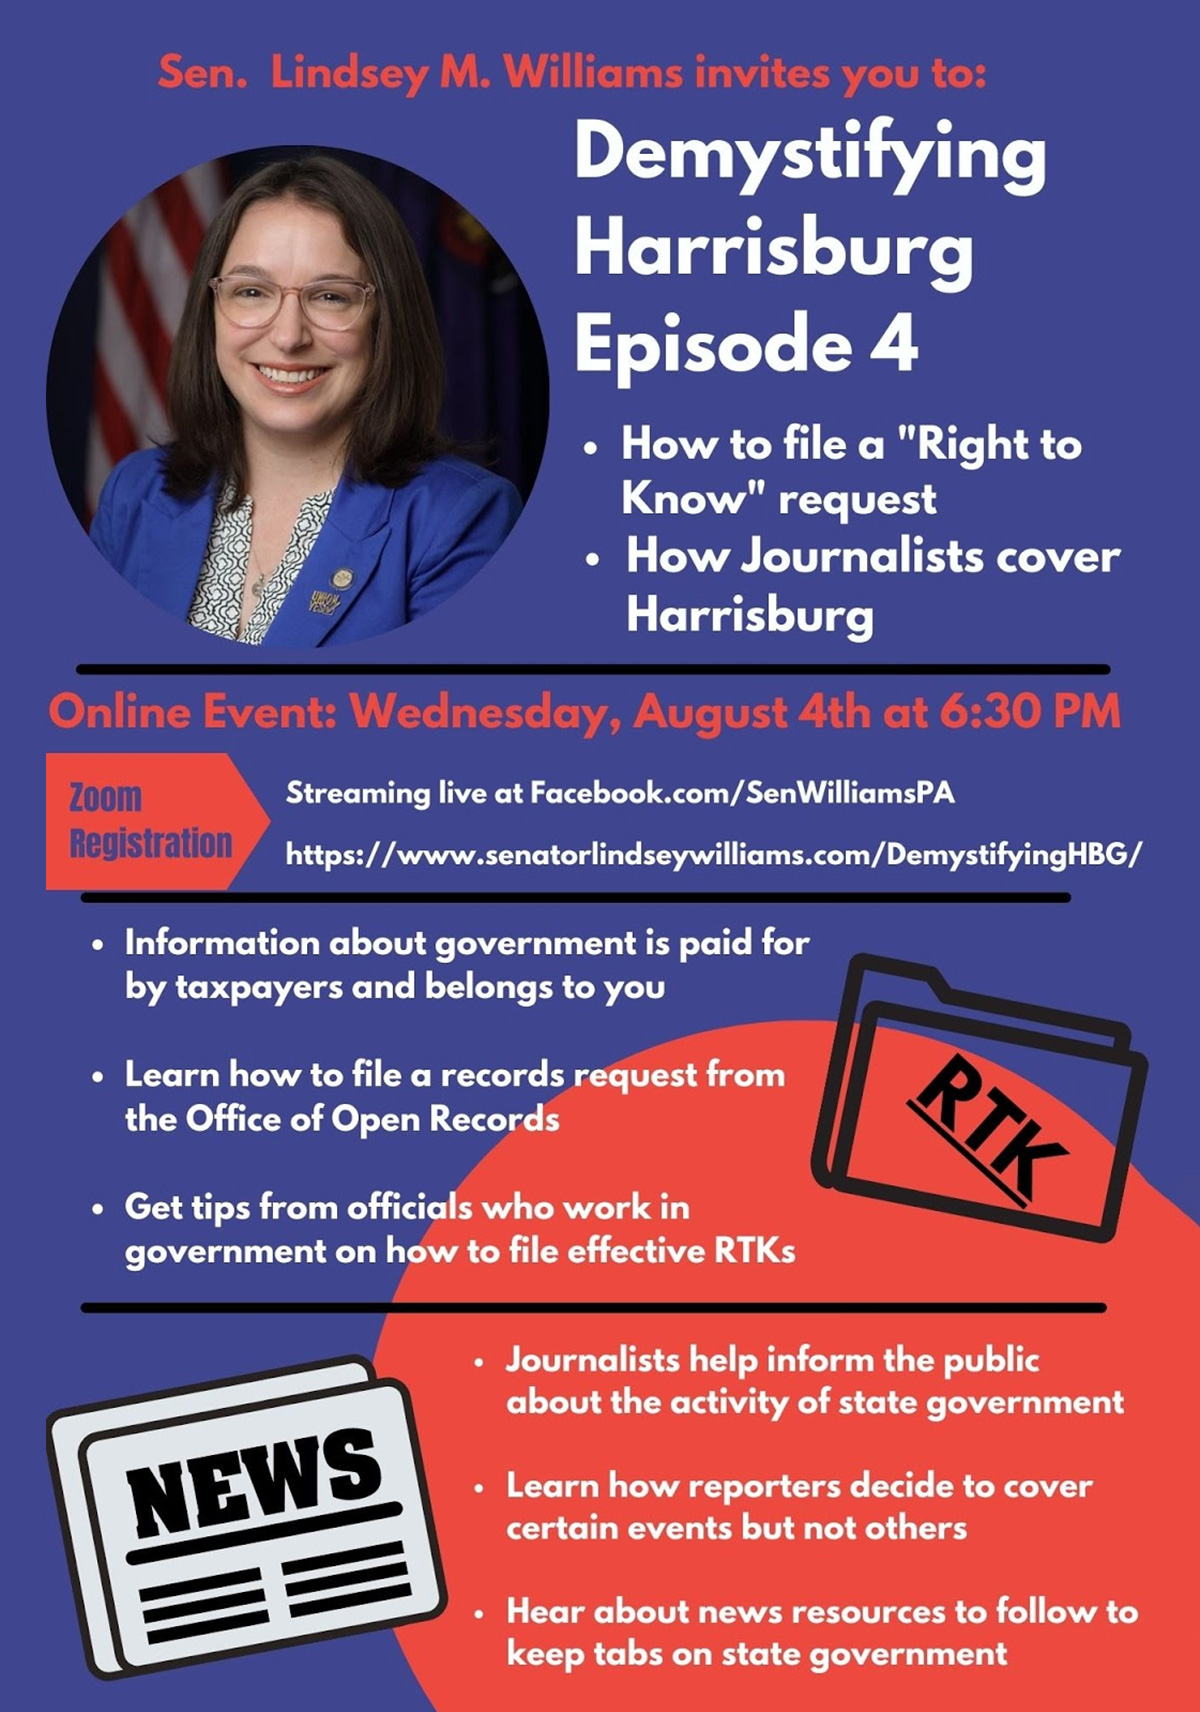 Demystifying Harrisburg: Right to Know and Media Coverage